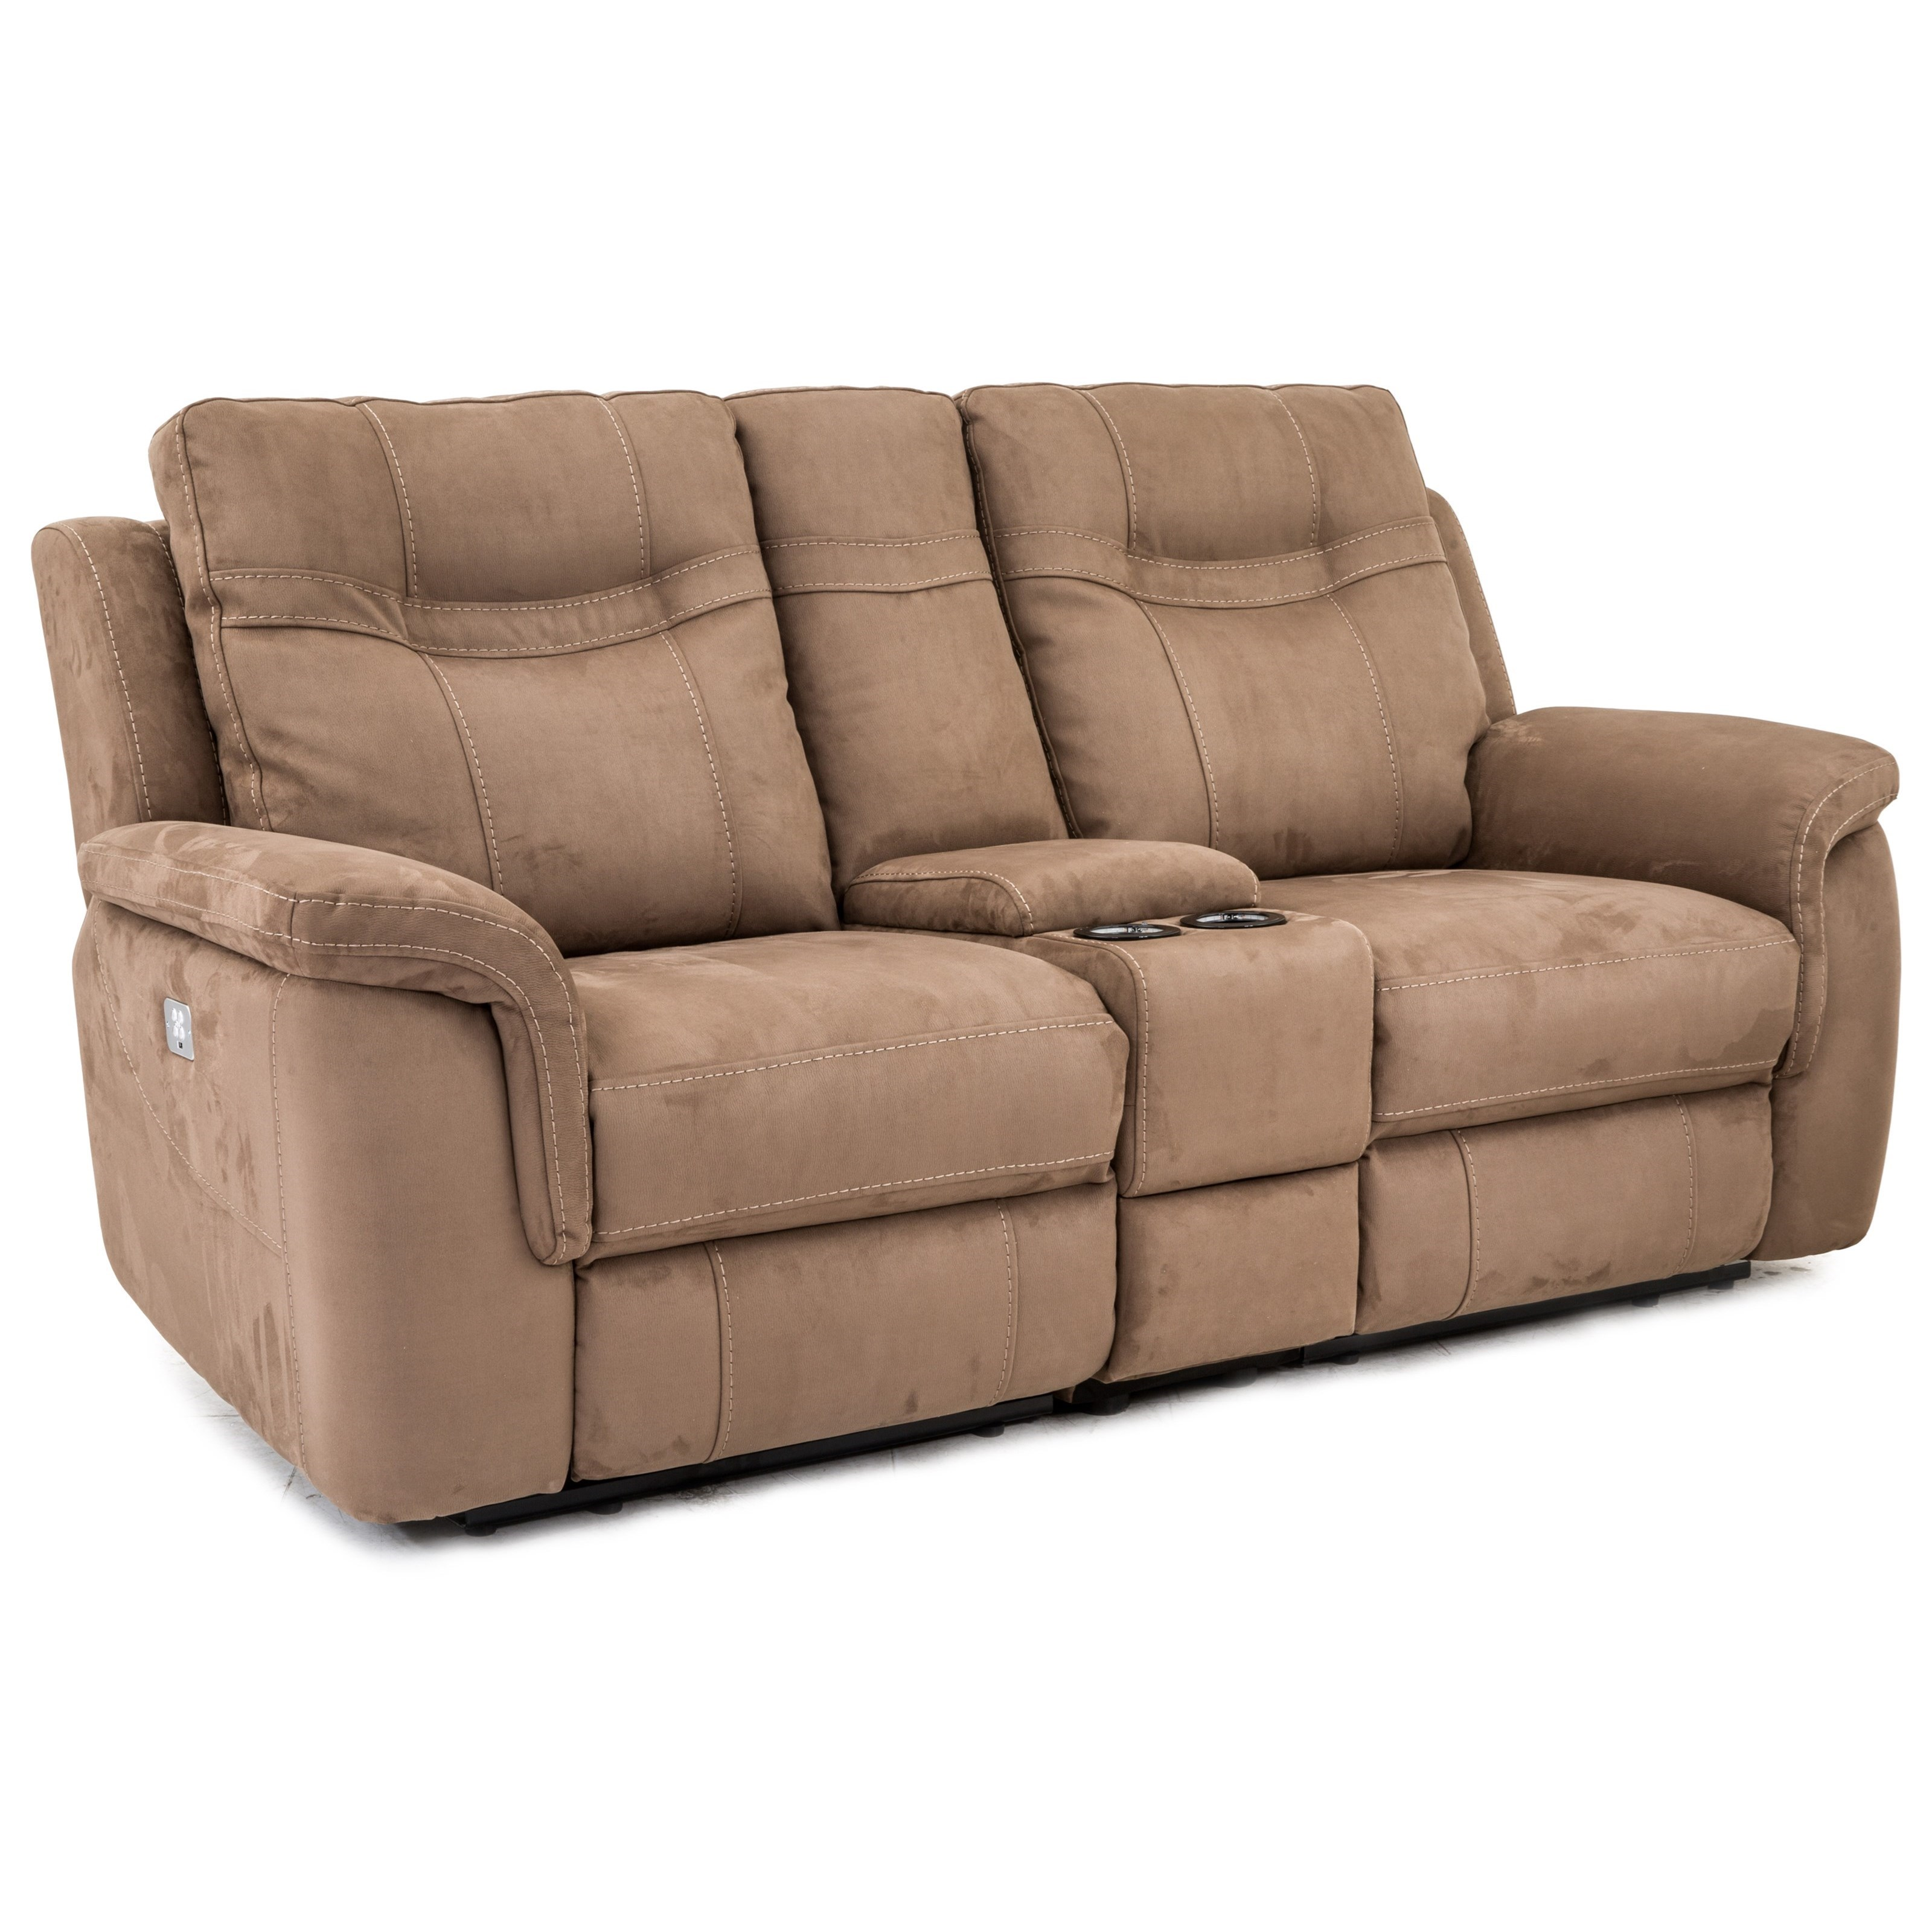 5169 Power Reclining Loveseat by Cheers Sofa at Lagniappe Home Store